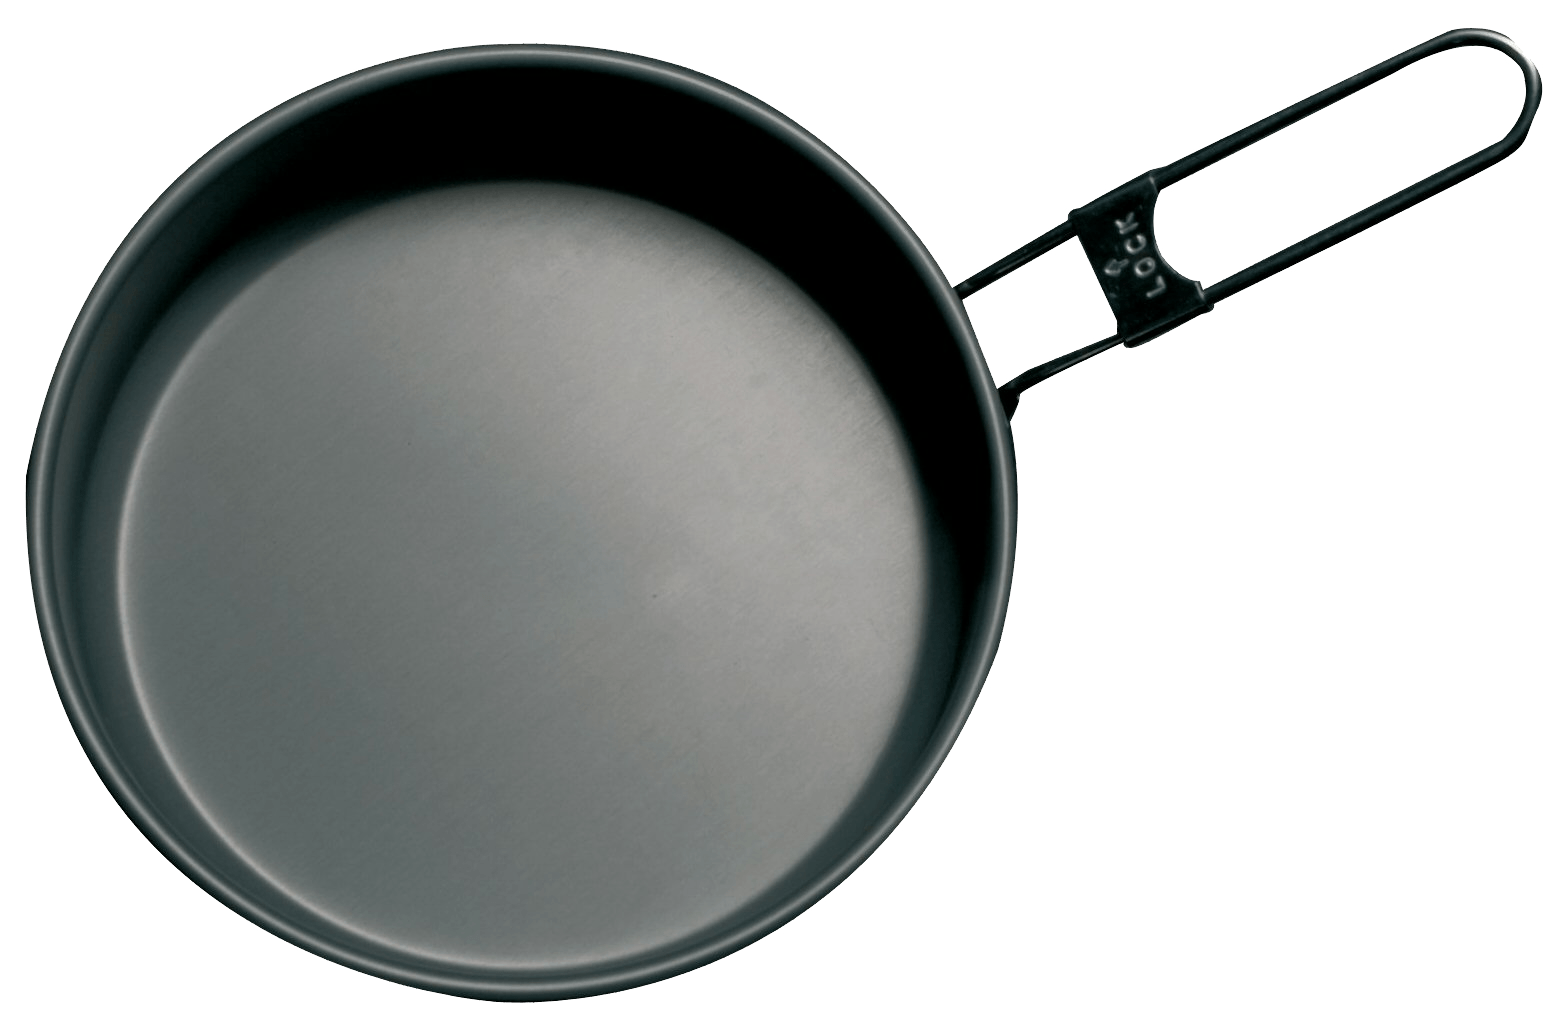 Frying Pan Png Image PNG Image - Frying Pan PNG